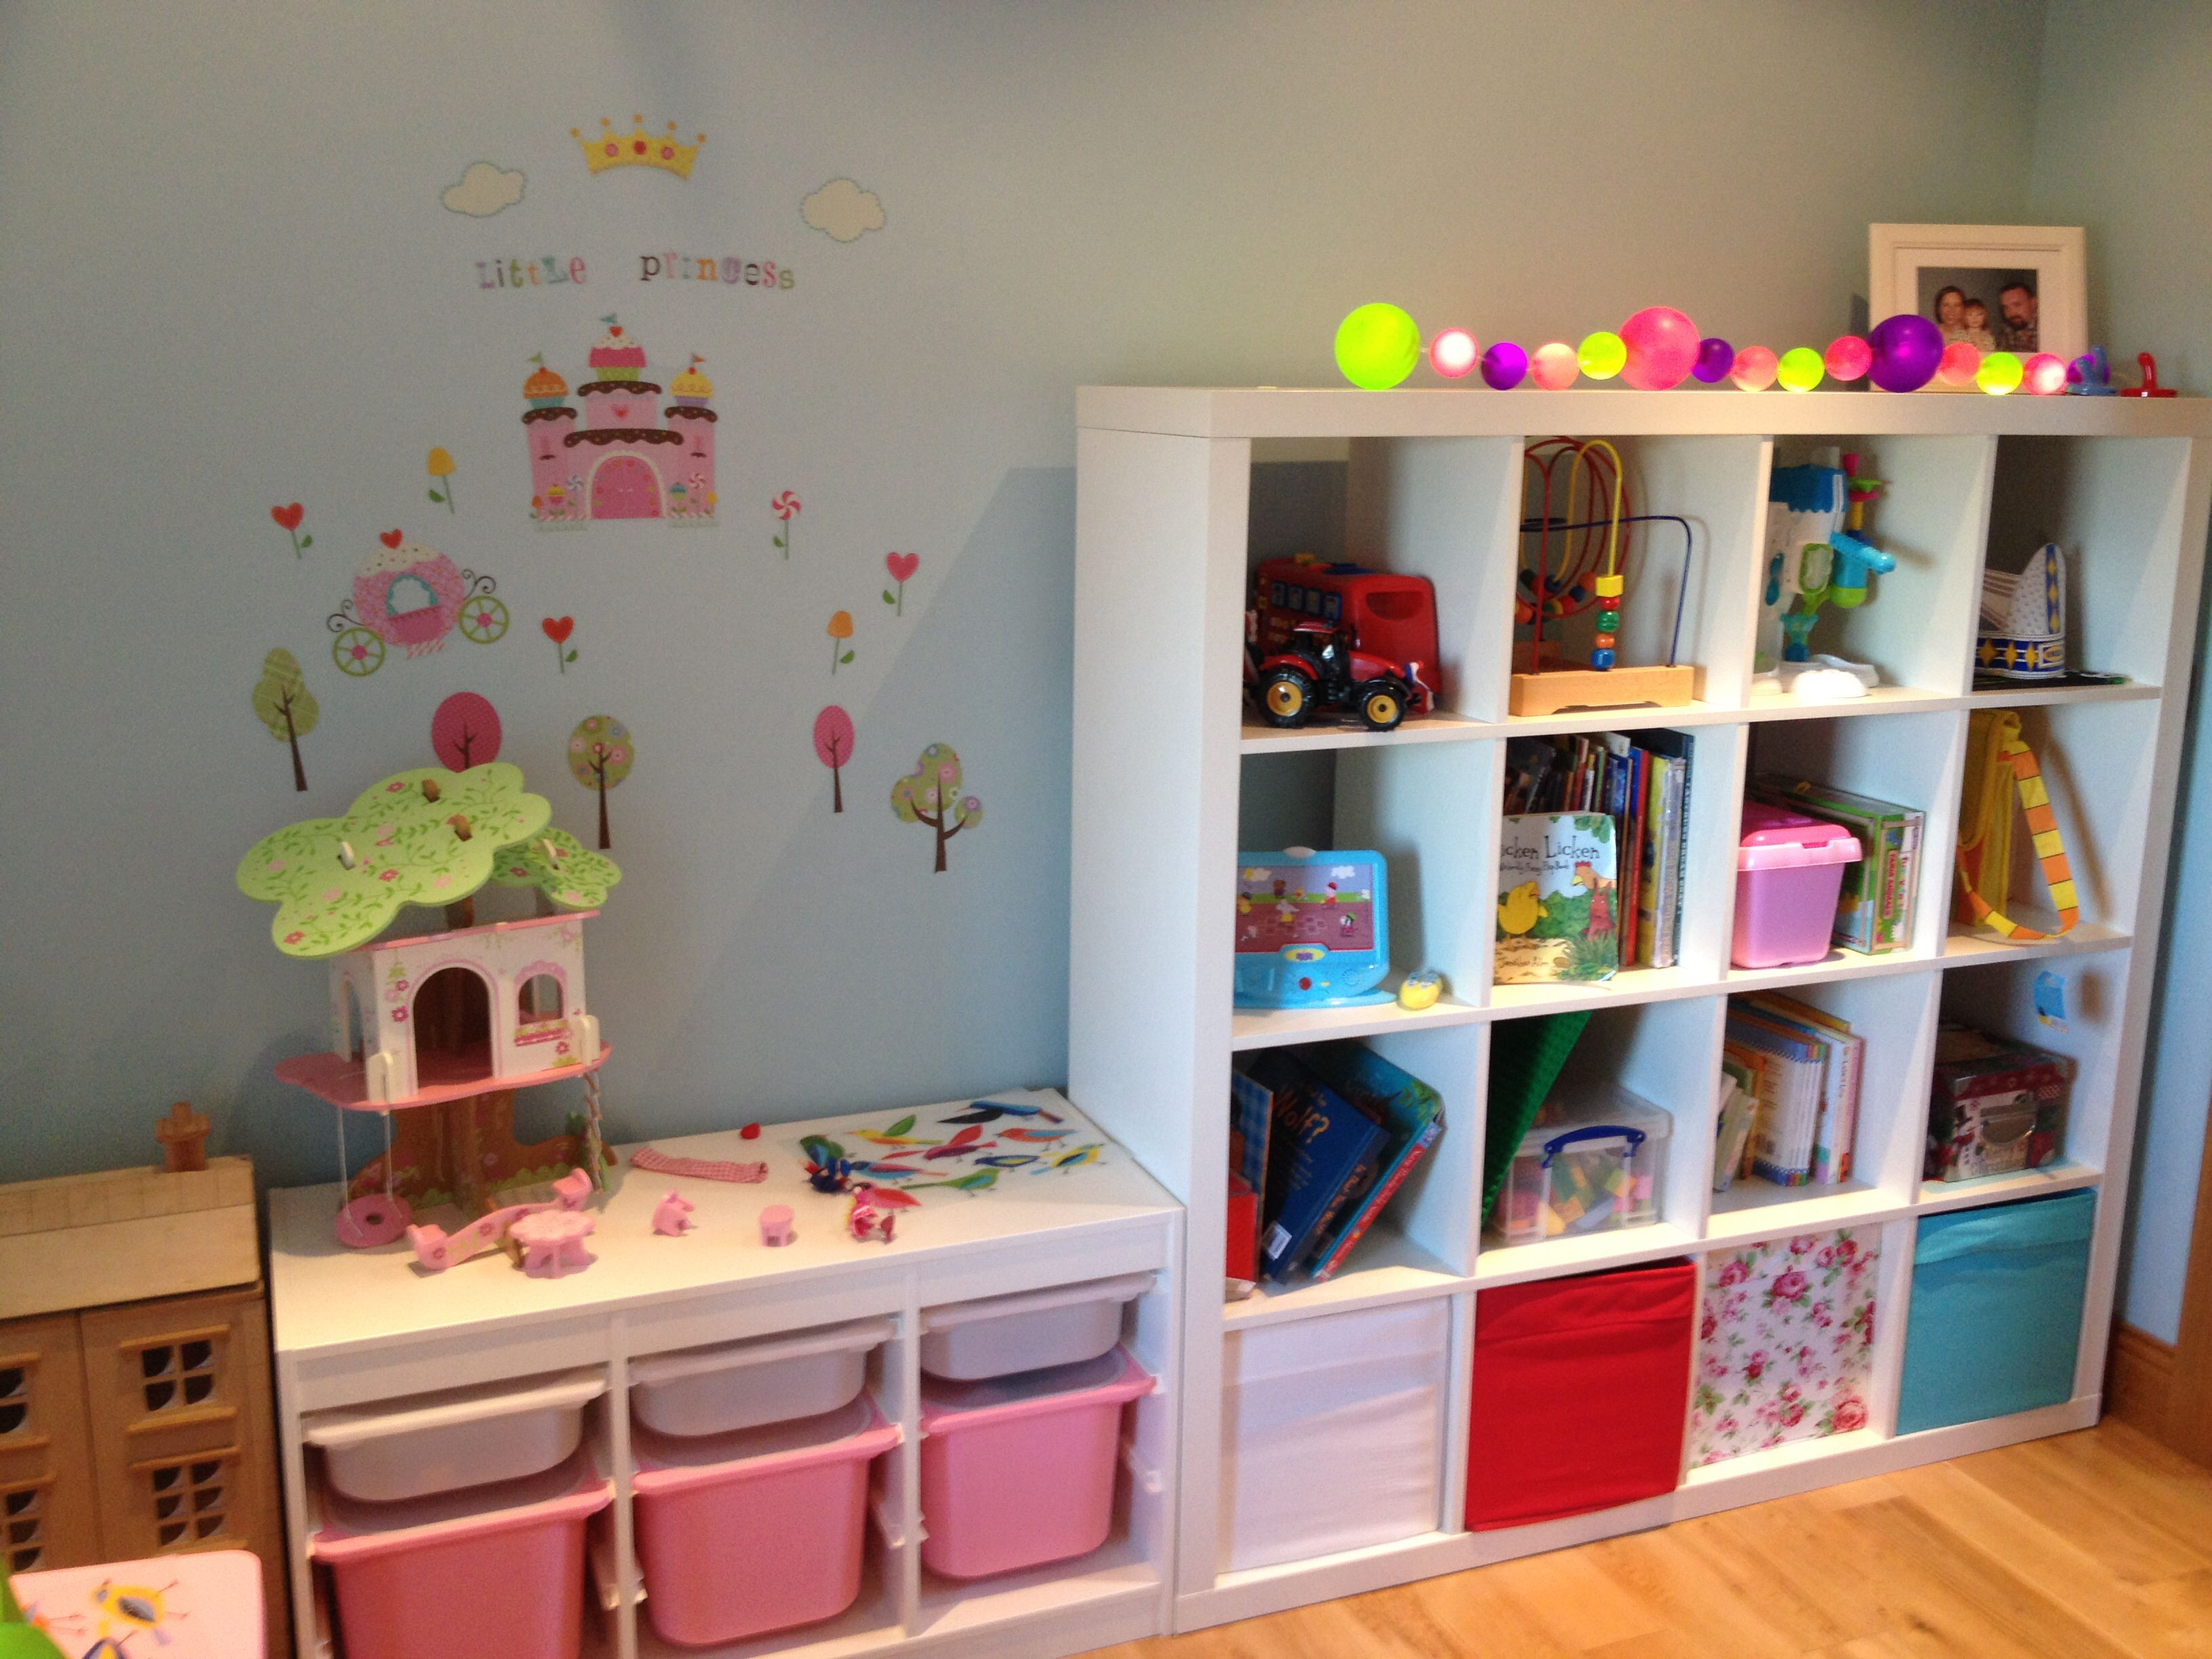 Design Ikea Playroom Ideas excellent ikea playroom ideas digital photography with kids rooms for girls and toys storage bins also